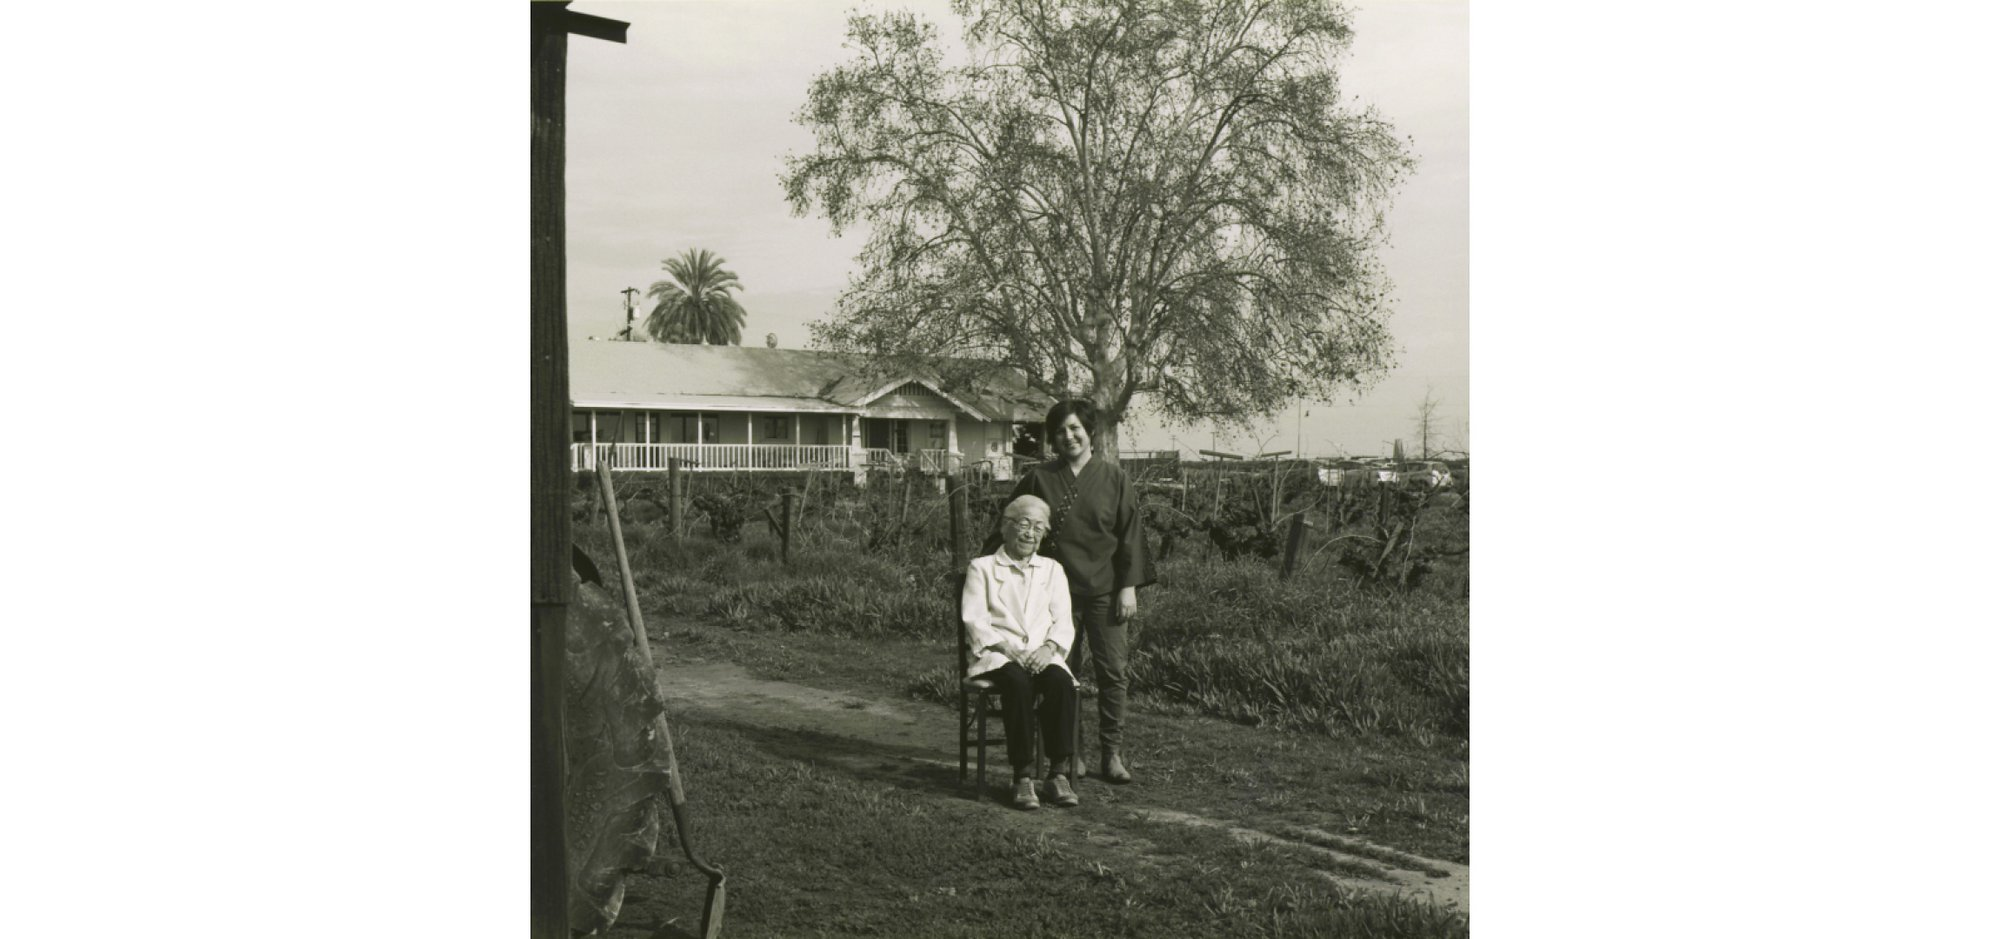 Nikiko Masumoto stands behind her grandmother, Carole Yukino Sugimoto Masumoto, on the Masumoto Family Farm in Del Rey, California.